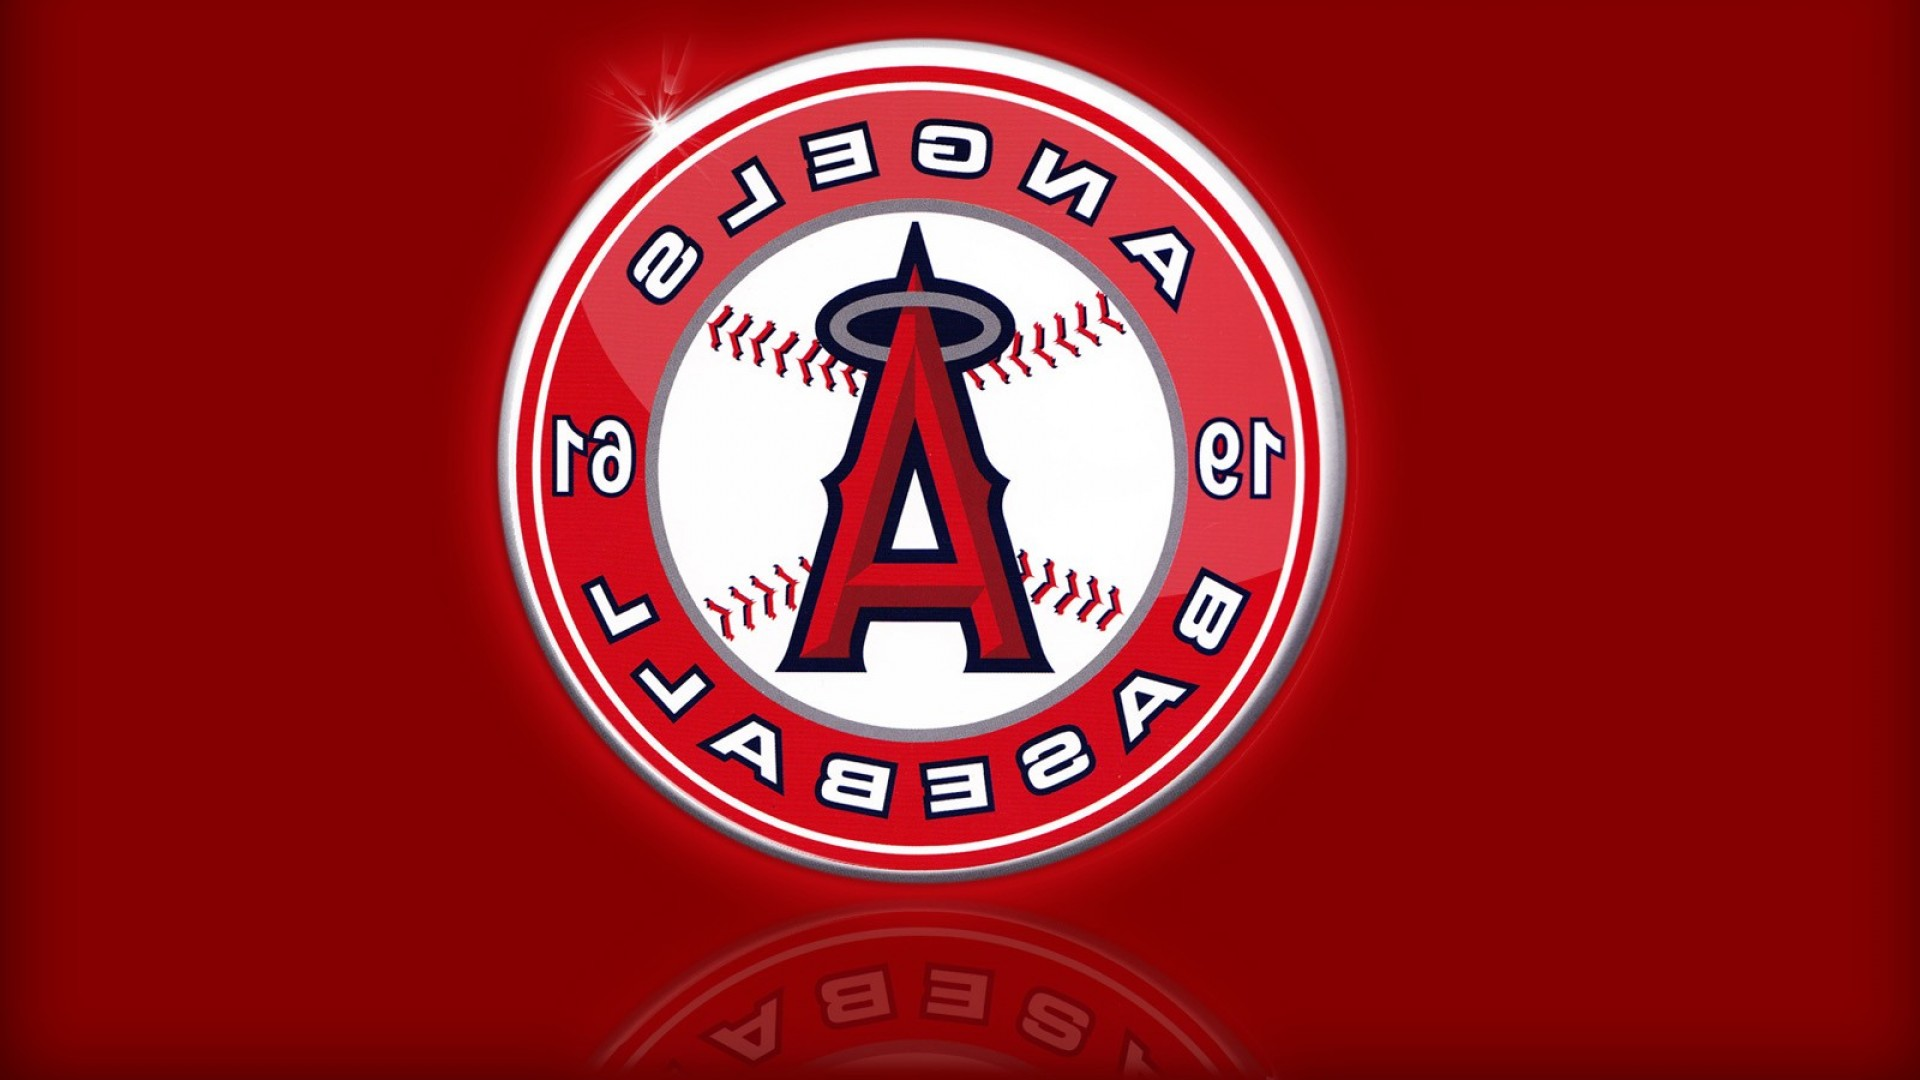 Anaheim Angels Logo Vector Art: Anaheim Angels Wallpaper Redsox Hd Images Sport Photos American Baseball League X